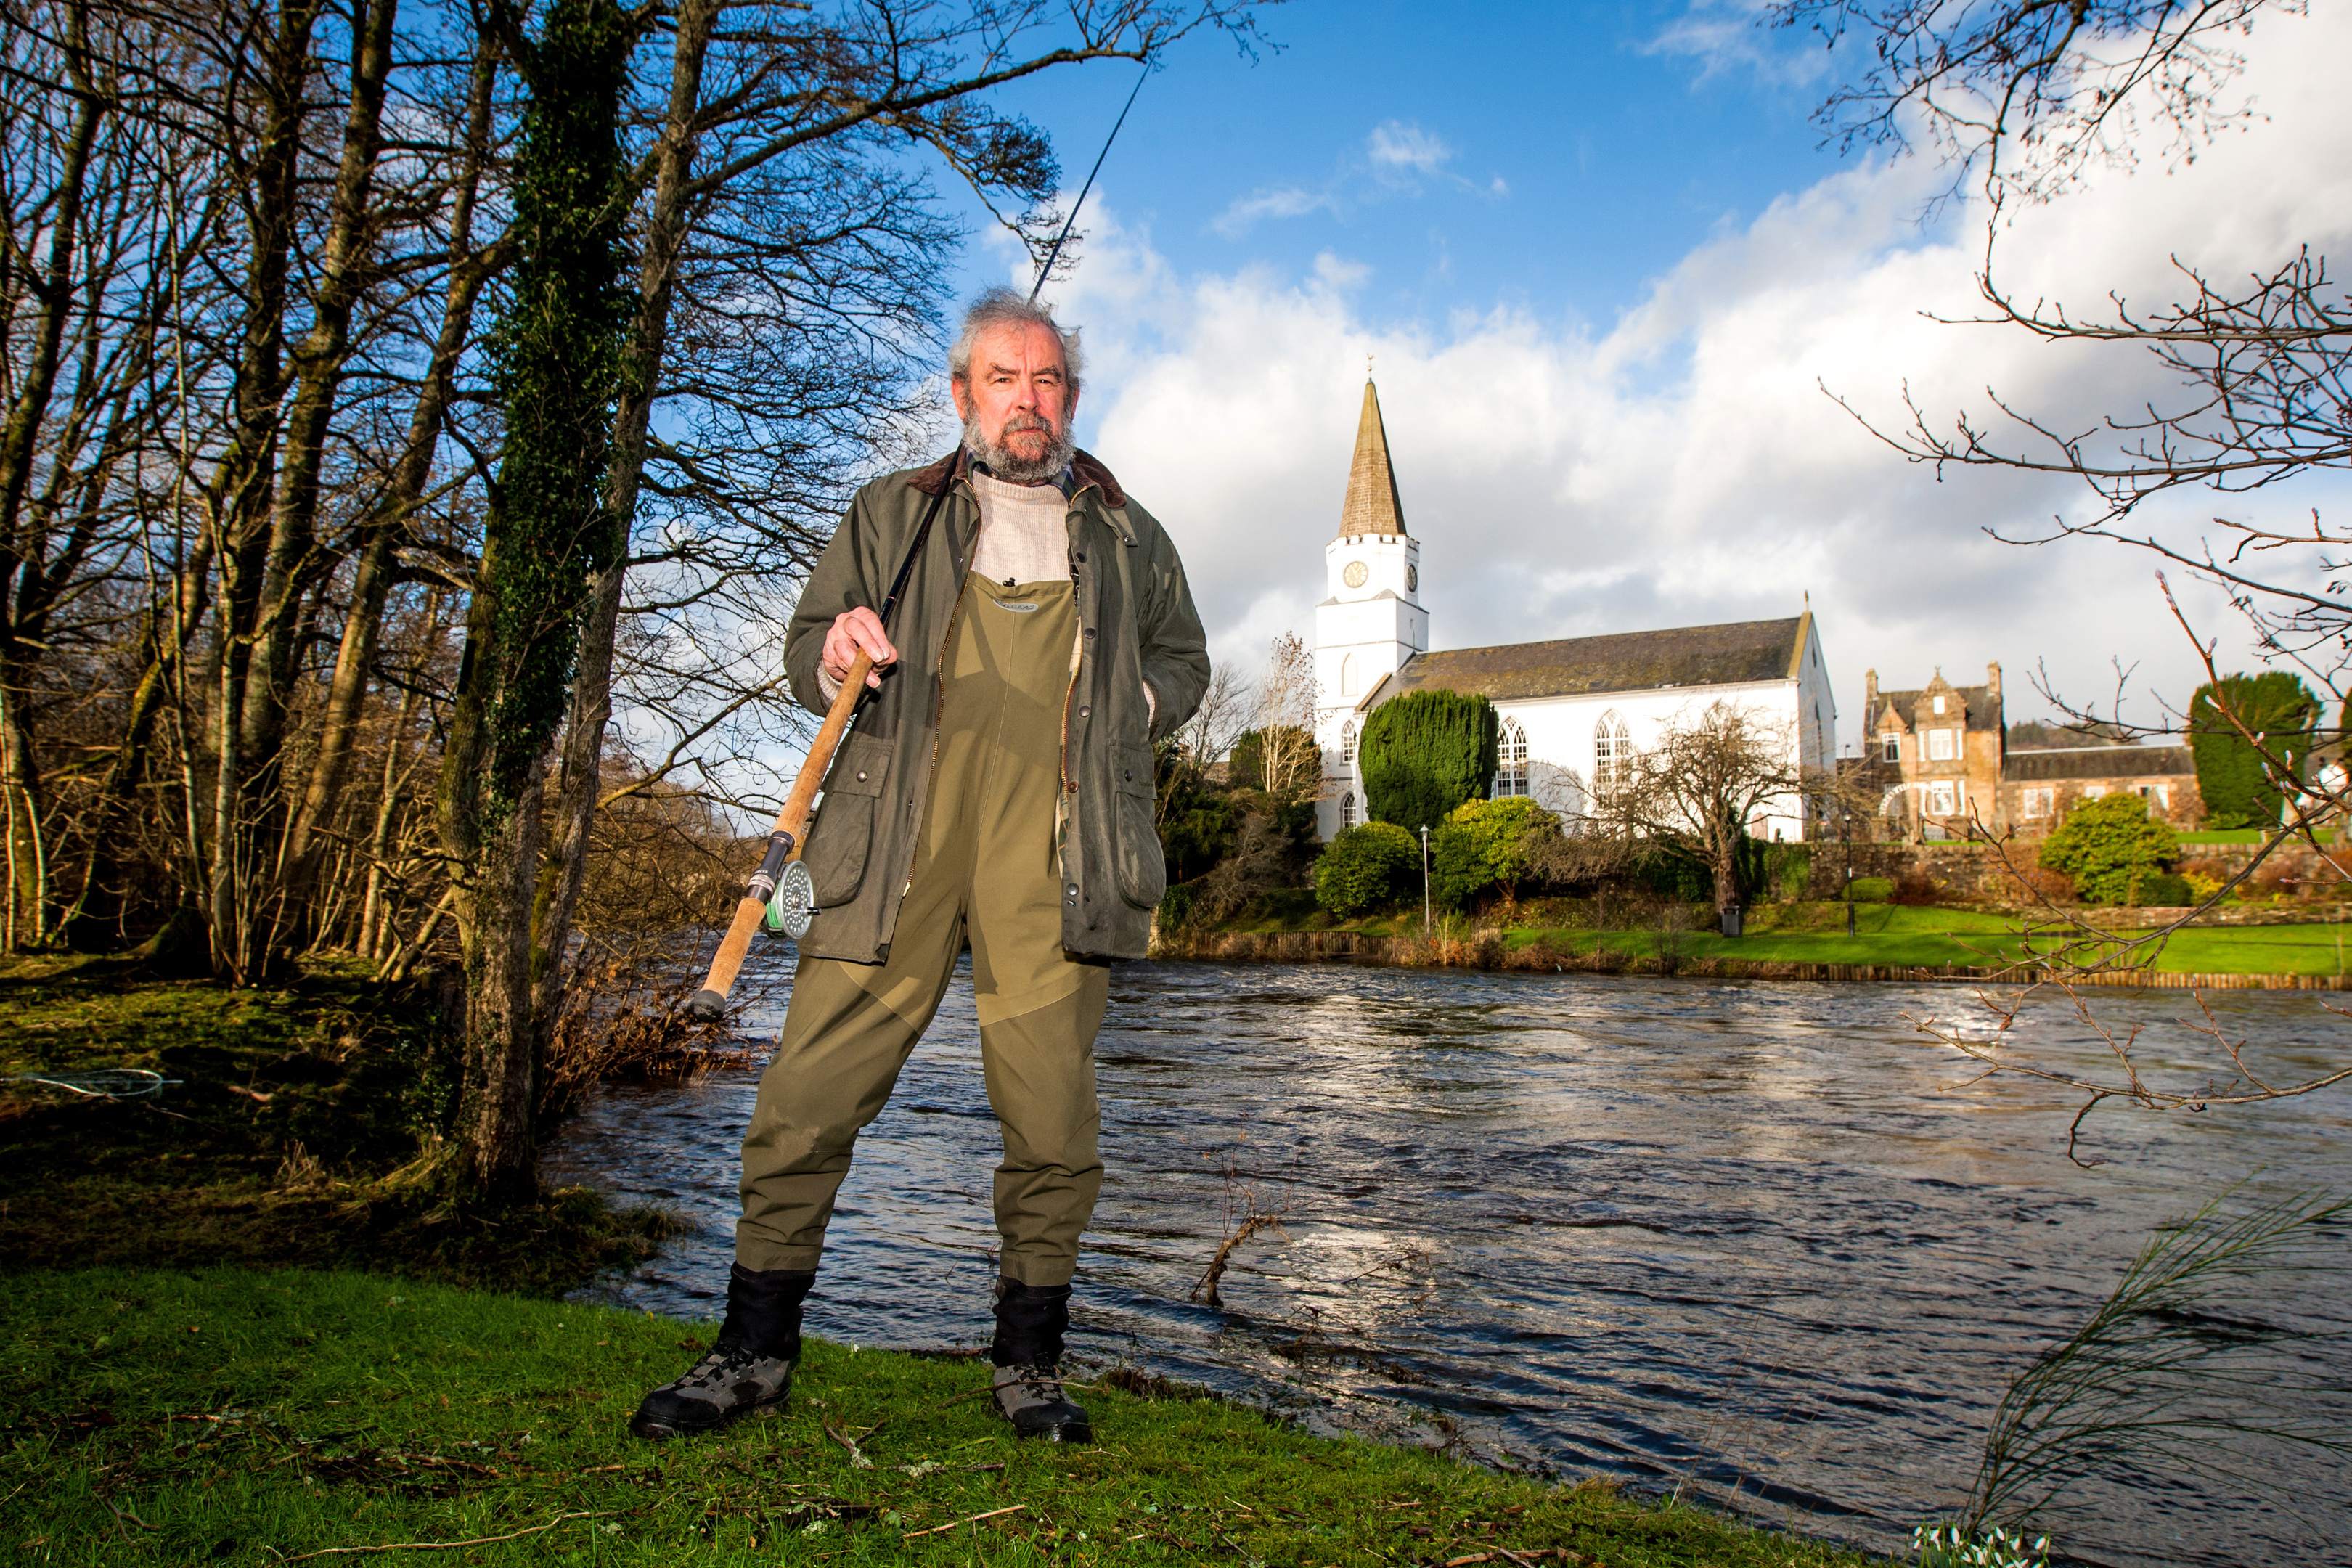 Pat Silvey, of Comrie Angling Club, is concerned about the proposed recategorisation.